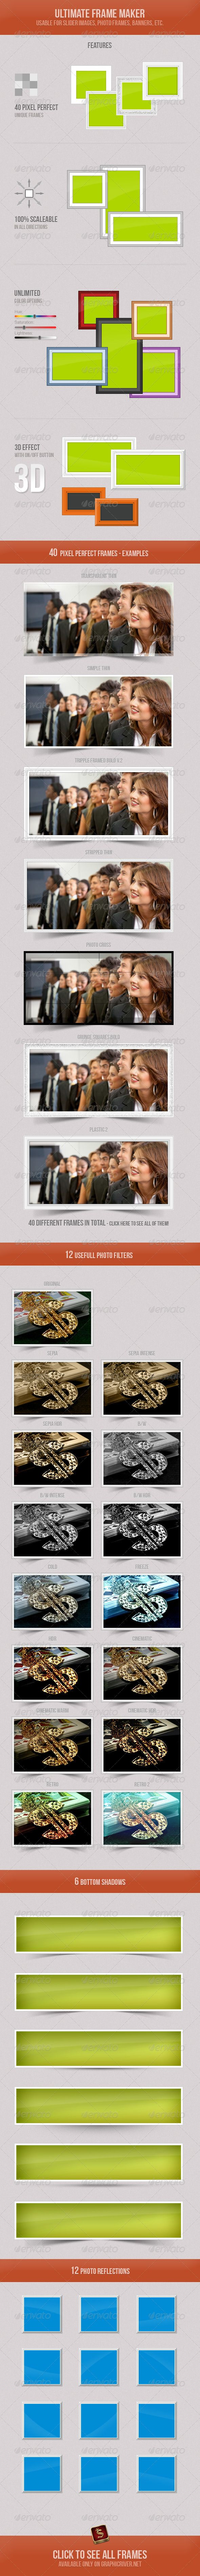 Ultimate Frame Maker - #Sliders & Features Web Elements Download here: https://graphicriver.net/item/ultimate-frame-maker/4409267?ref=alena994